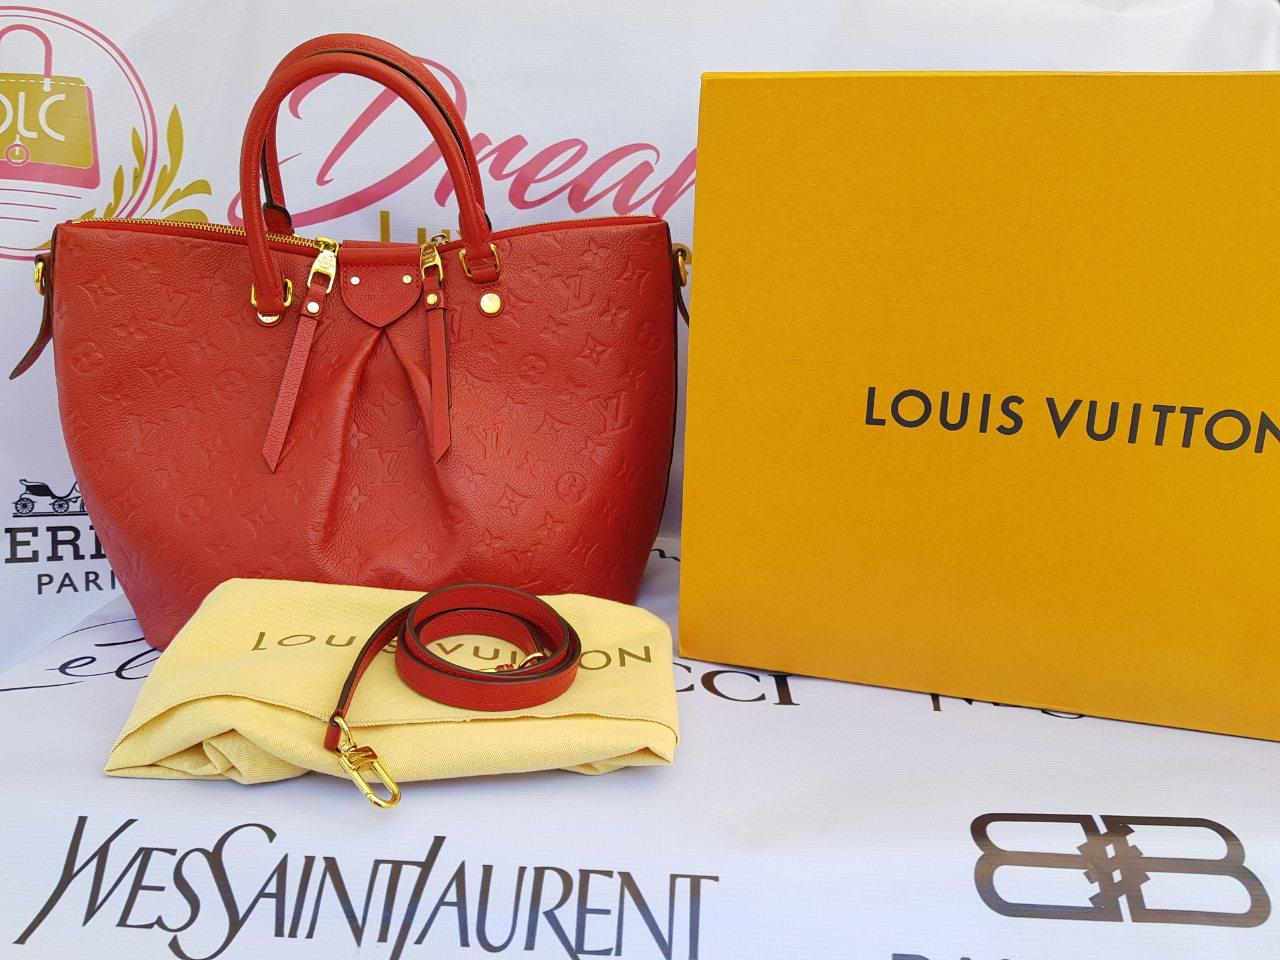 Authentic Louis Vuitton Manzarine